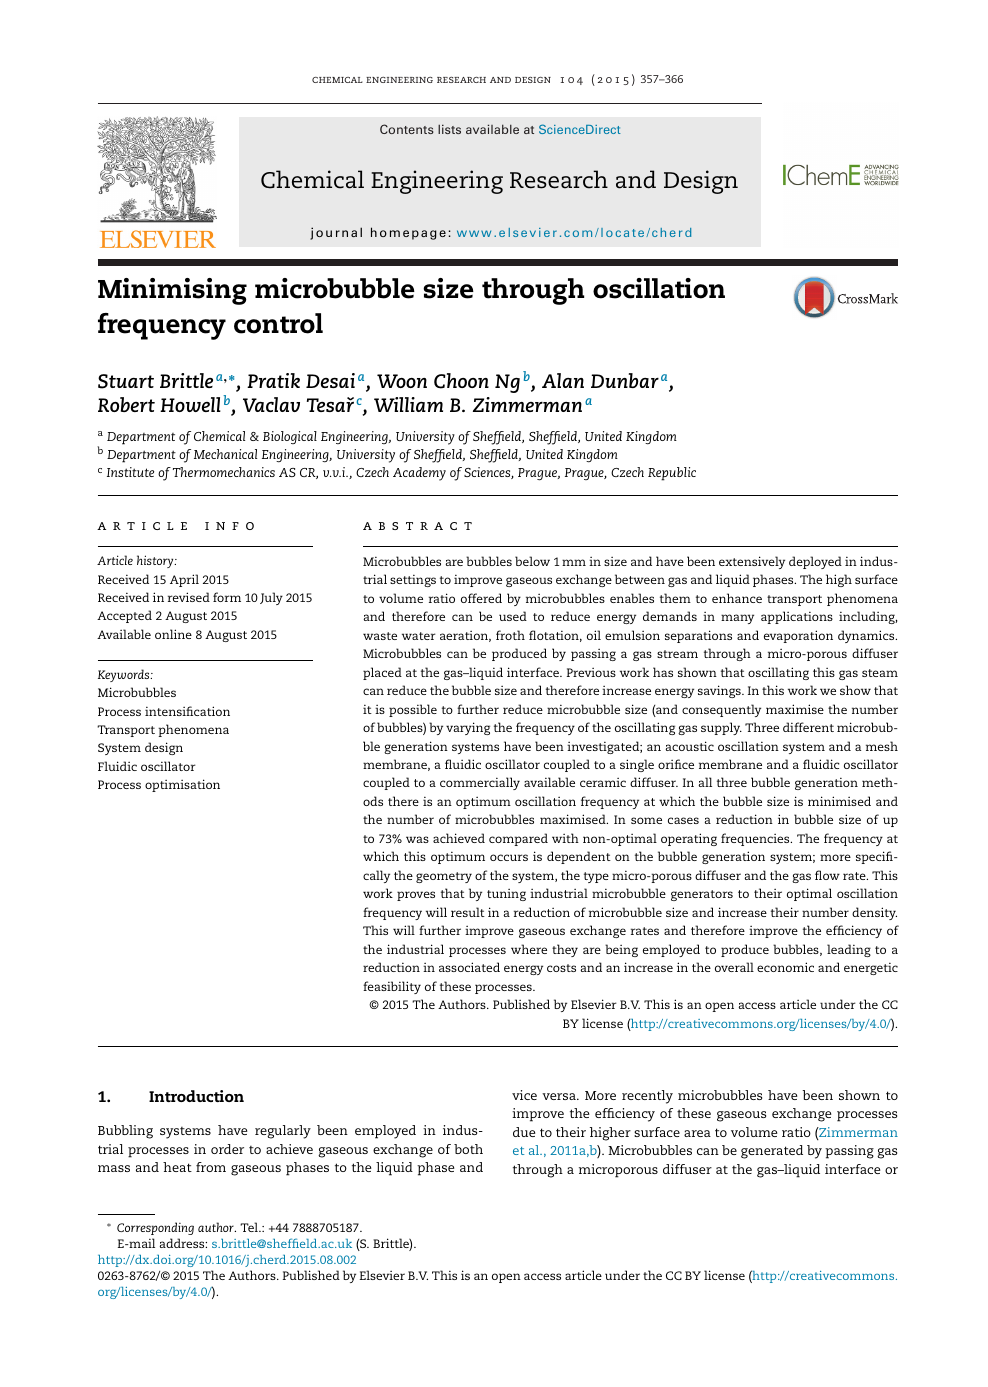 Minimising Microbubble Size Through Oscillation Frequency Control Topic Of Research Paper In Chemical Engineering Download Scholarly Article Pdf And Read For Free On Cyberleninka Open Science Hub